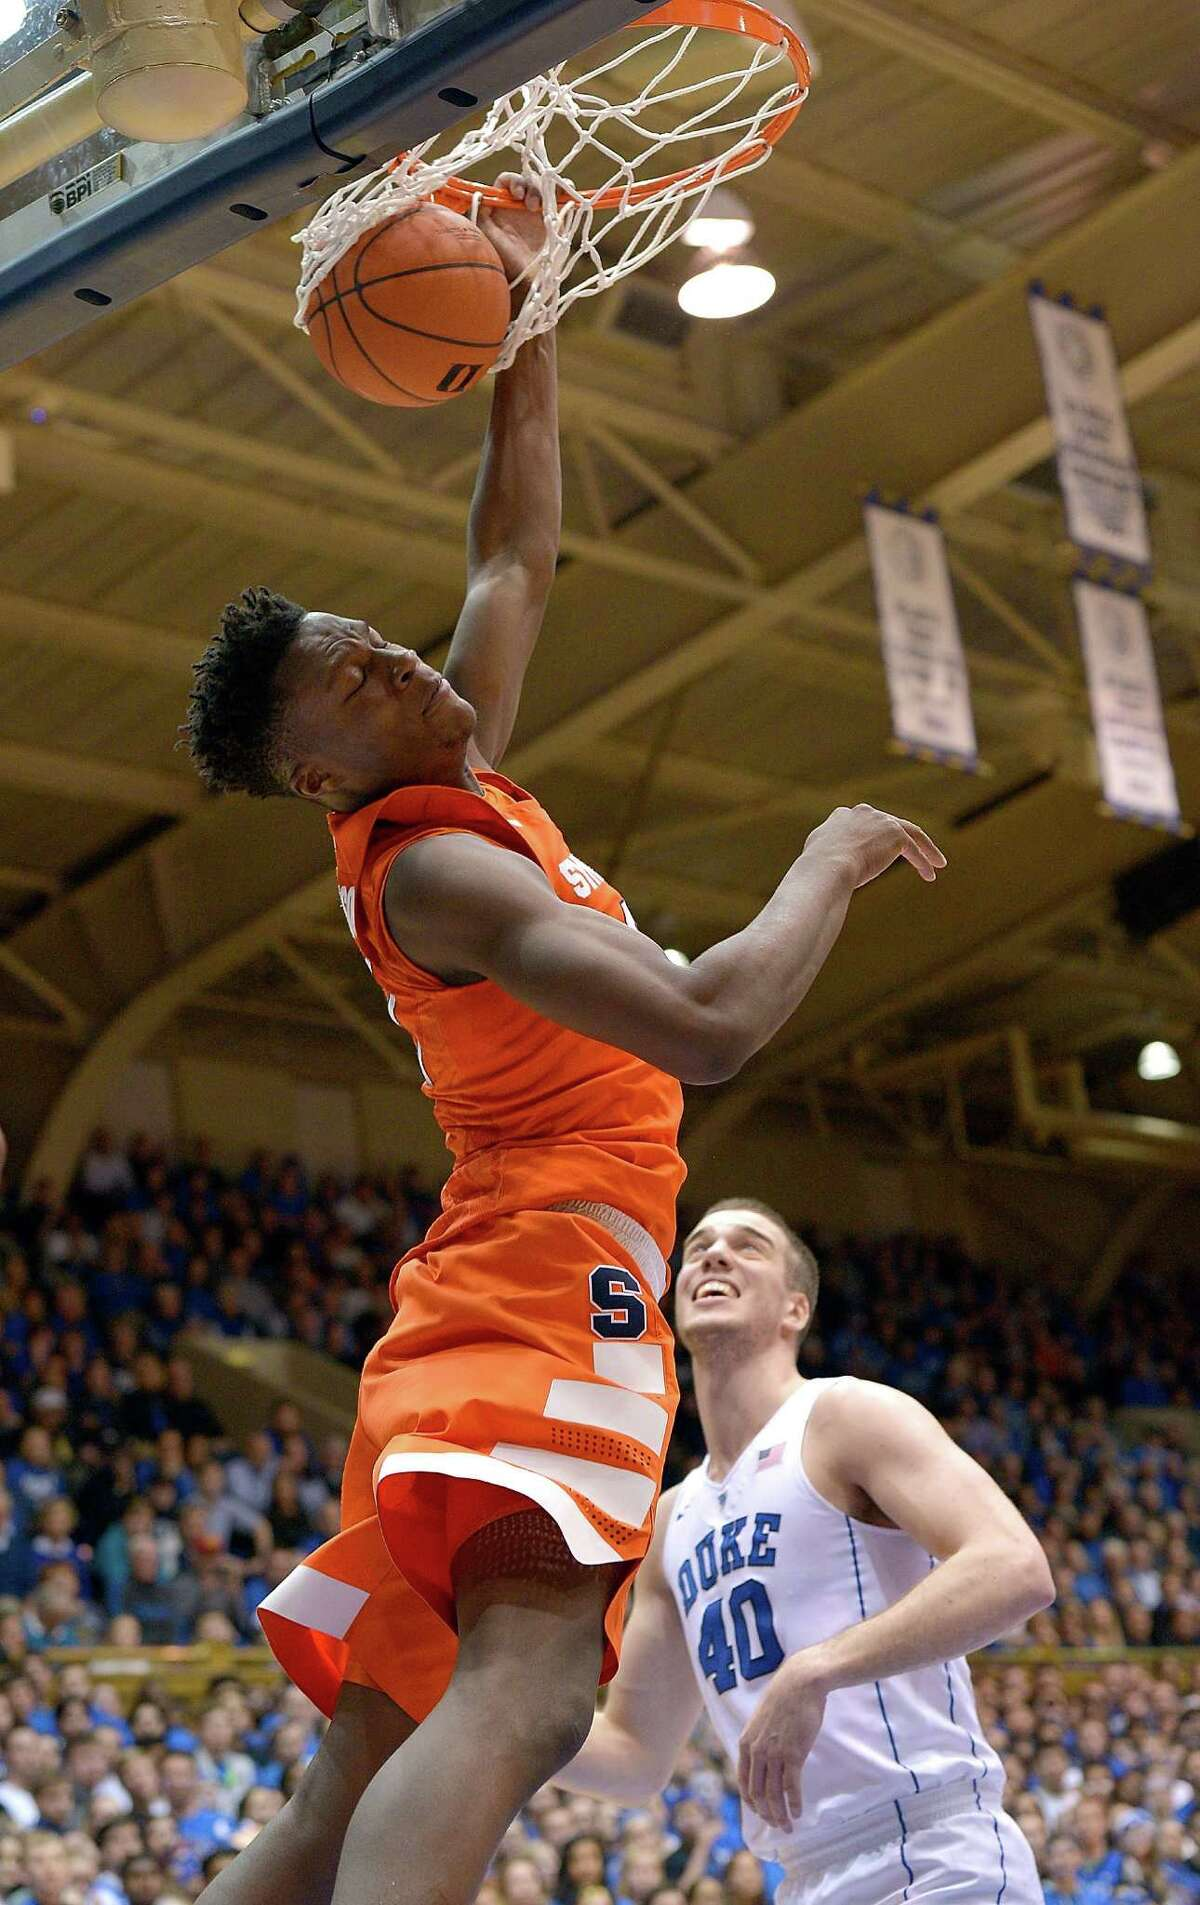 DURHAM, NC - JANUARY 18: Tyler Roberson #21 of the Syracuse Orange dunks over Marshall Plumlee #40 of the Duke Blue Devils during their game at Cameron Indoor Stadium on January 18, 2016 in Durham, North Carolina. (Photo by Grant Halverson/Getty Images) ORG XMIT: 587451755